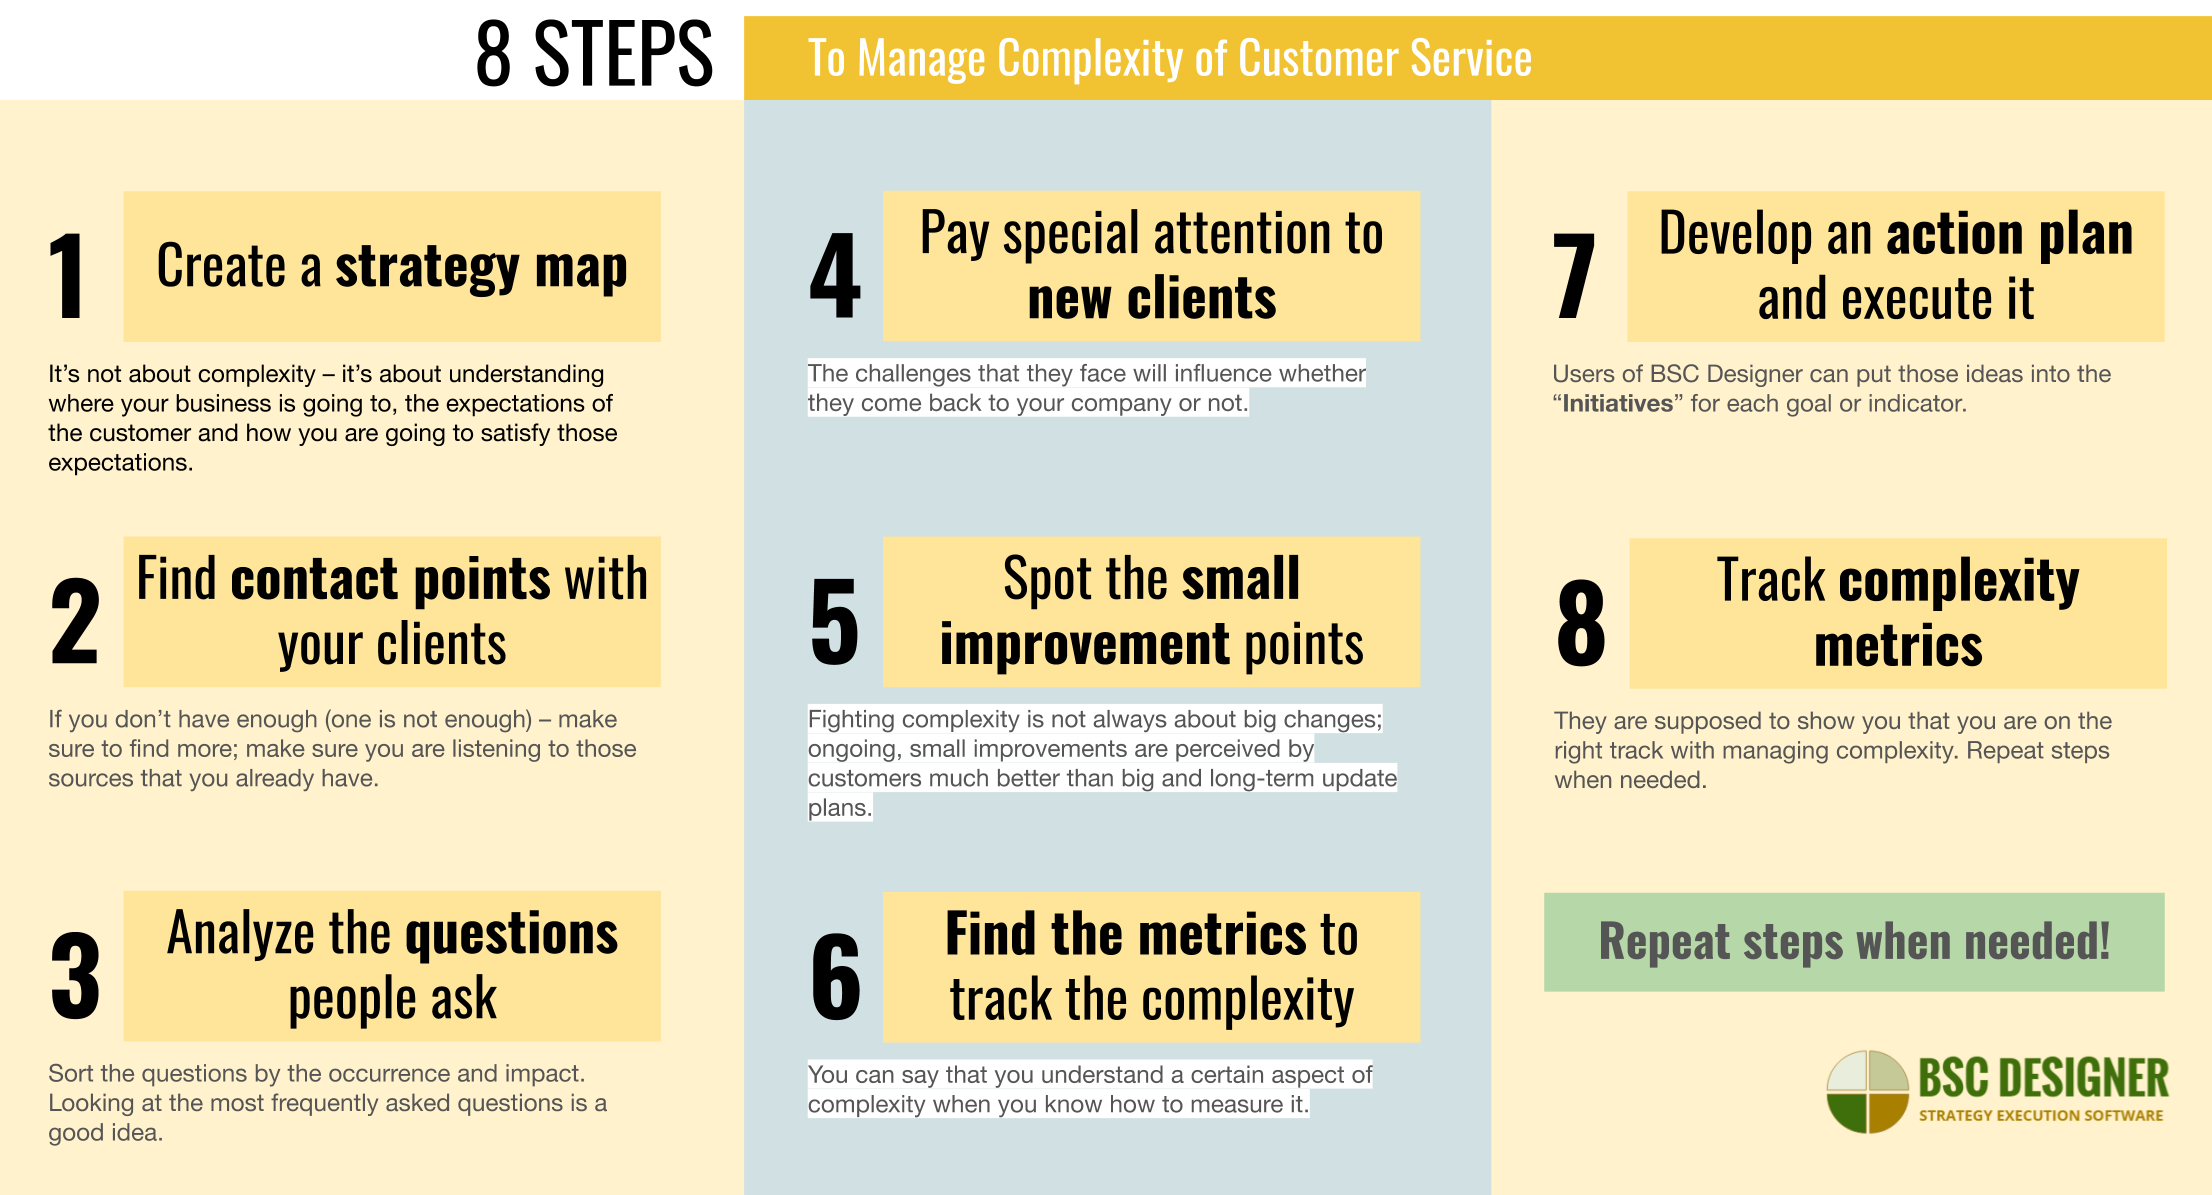 From understanding customer needs to finding proper complexity metrics